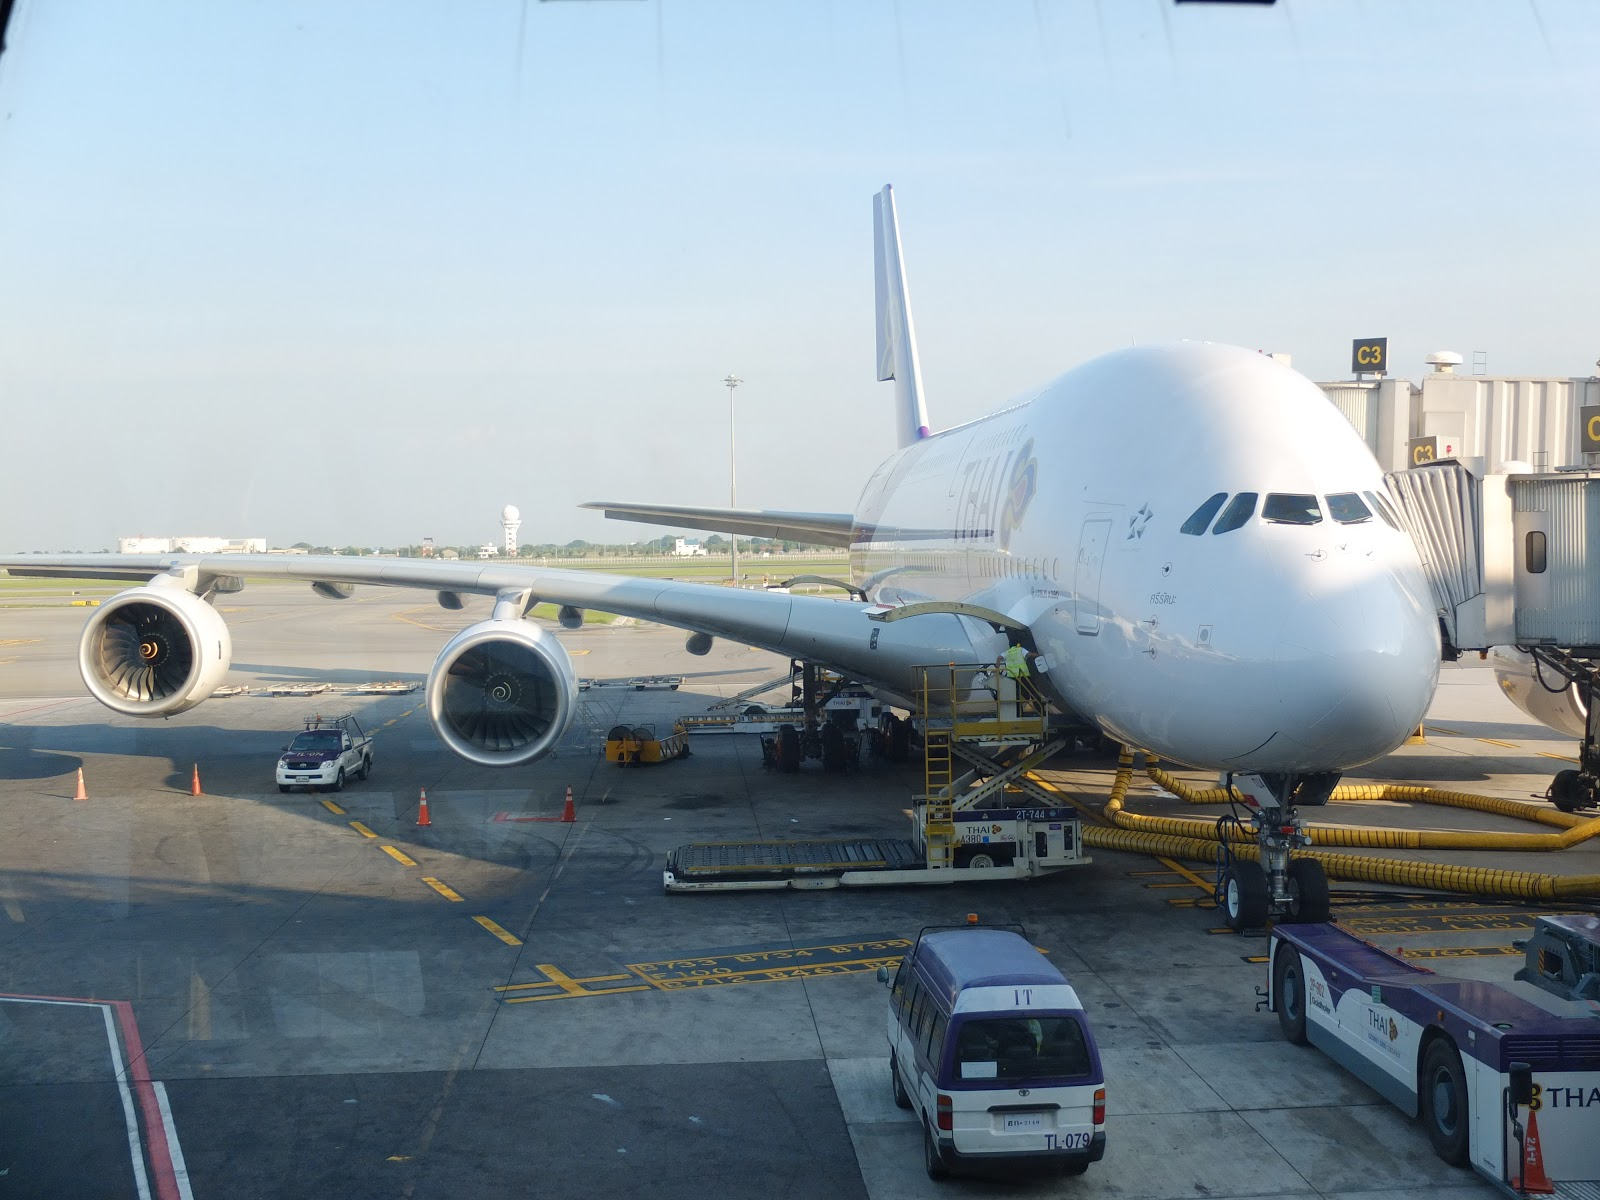 Avis du vol Thai Airways Paris → Bangkok en Economique